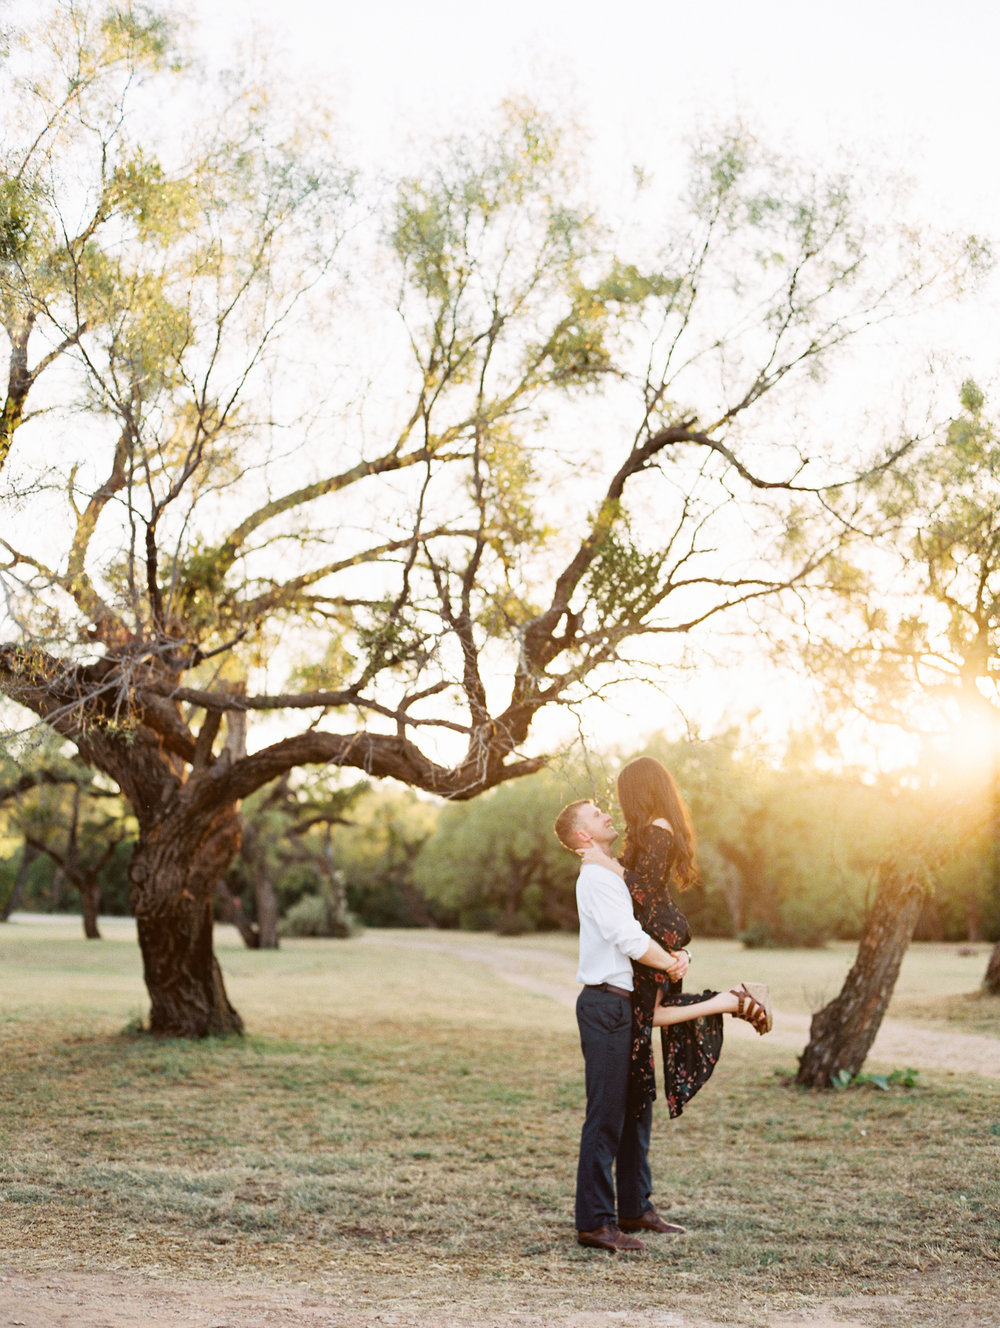 Dylan & Sayde | Britni Dean Photography | Texas Film Photographer + Anniversary Photographer